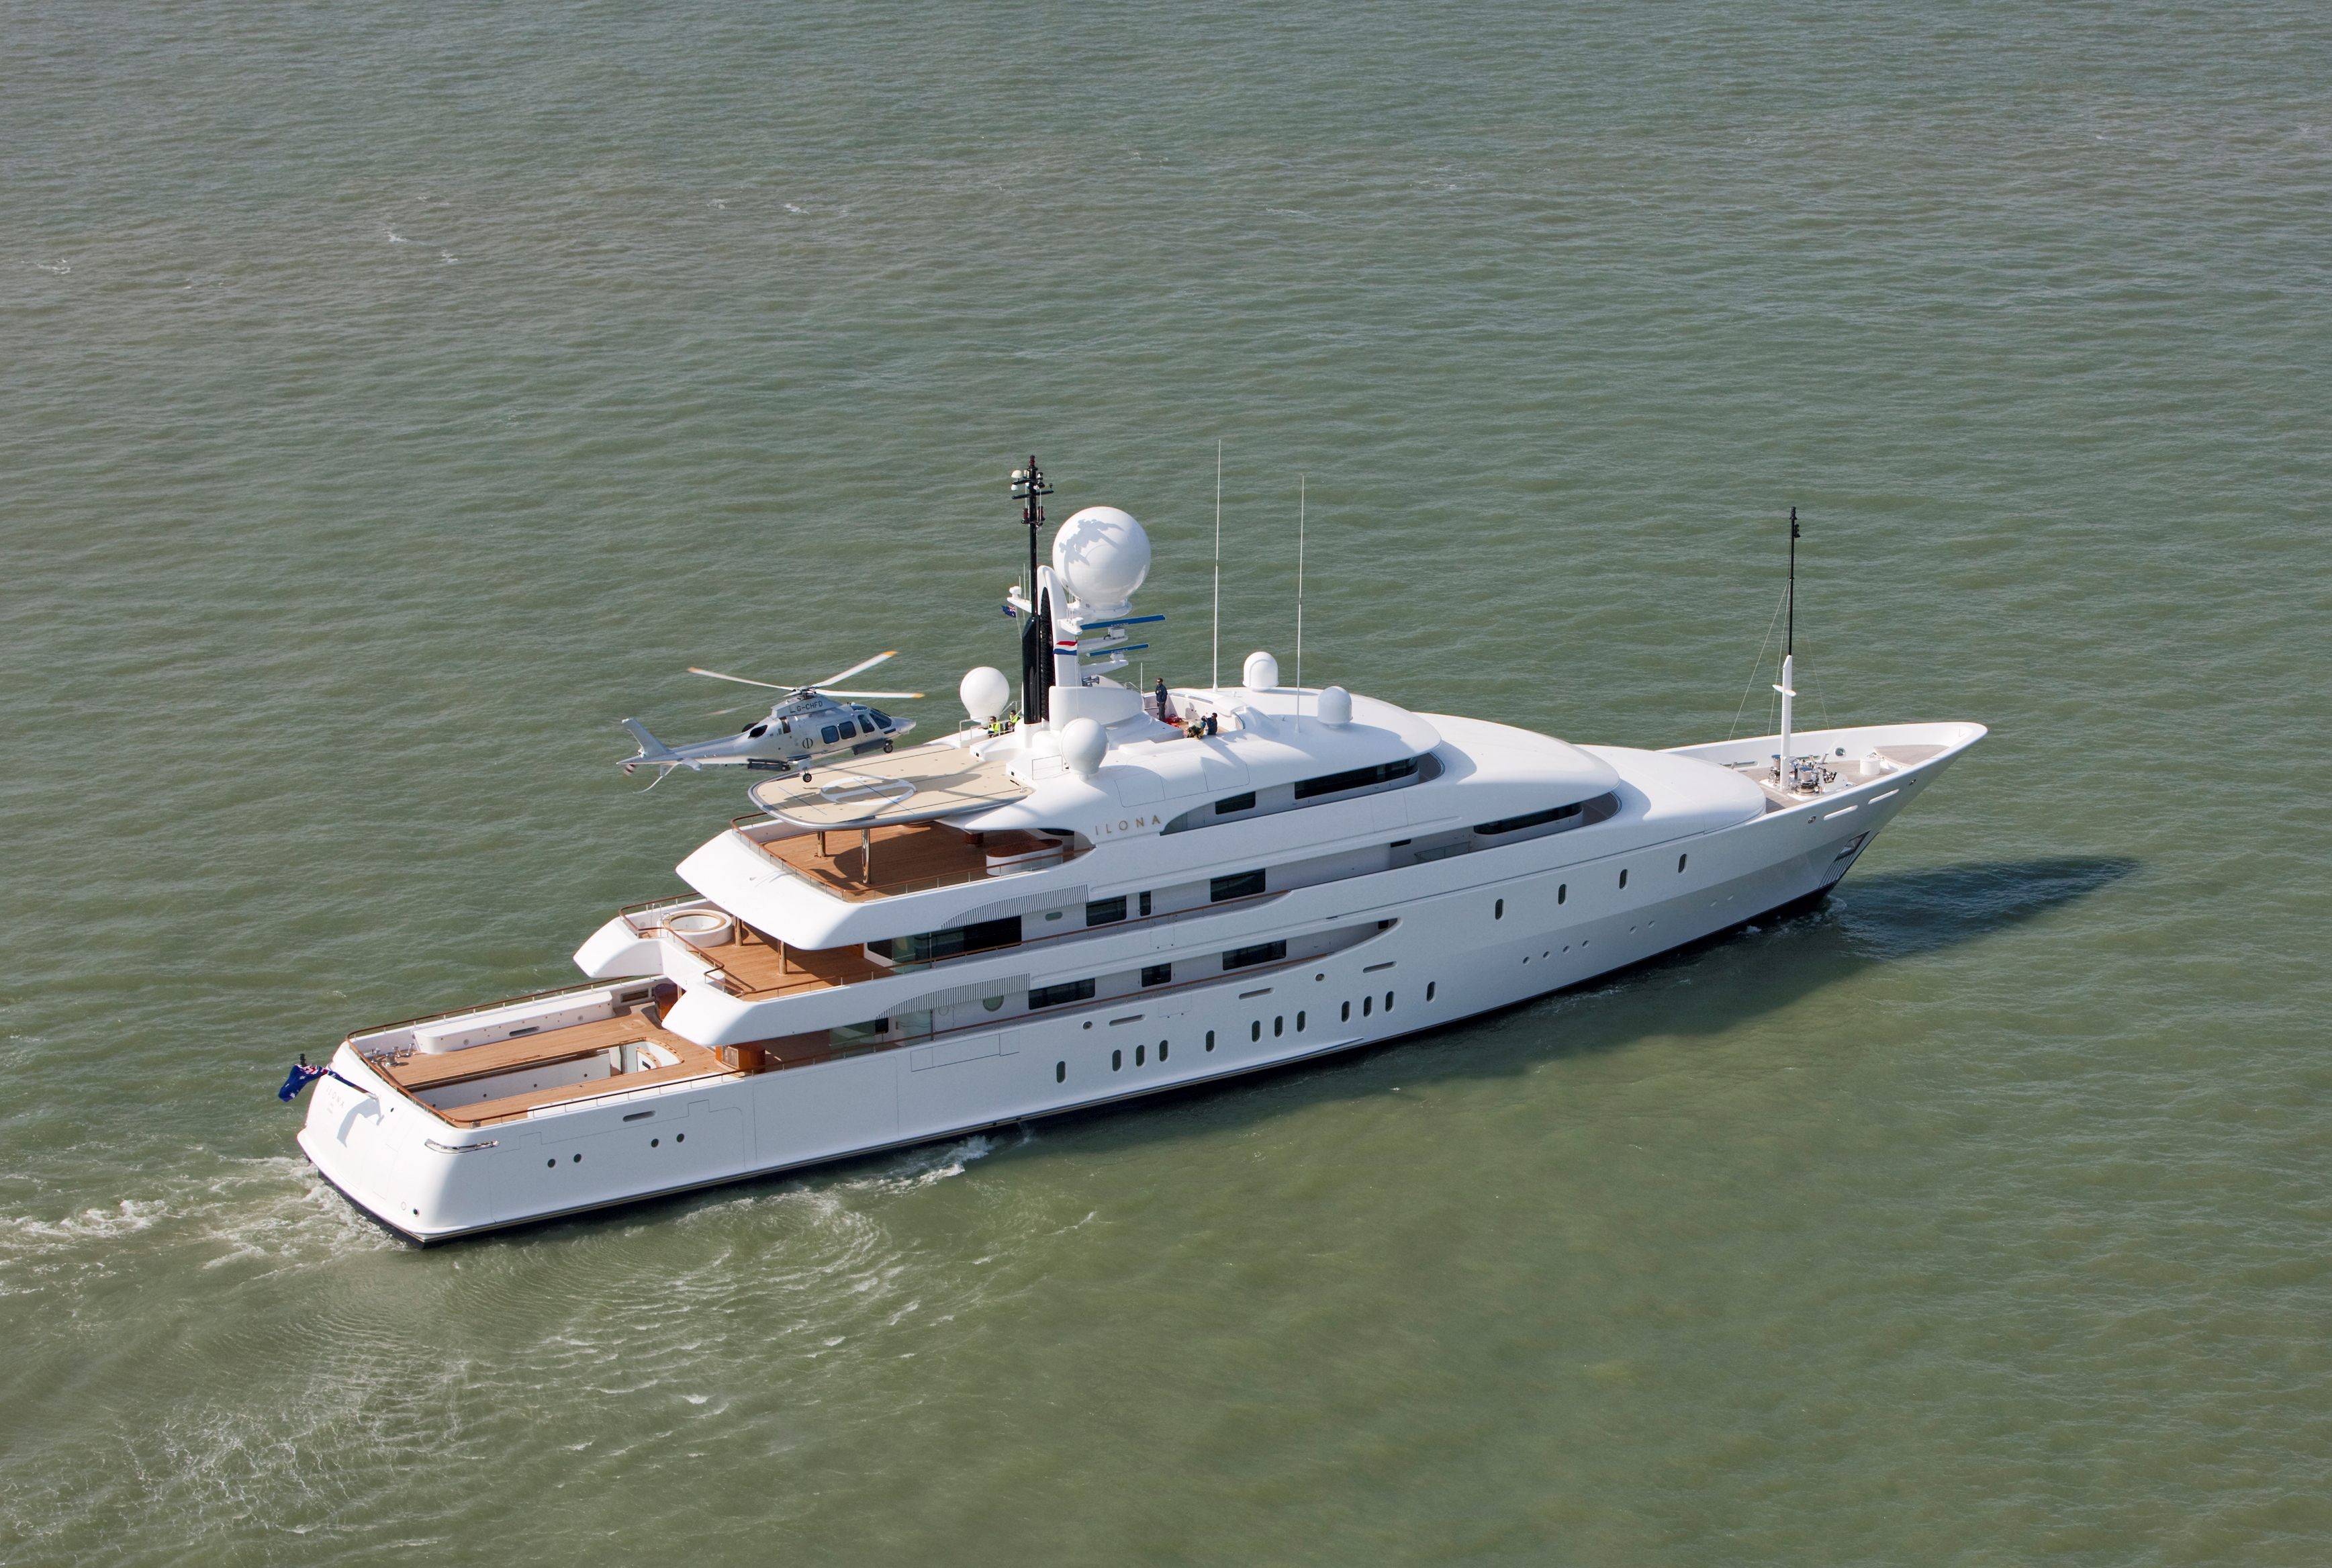 74 m mega yacht ILONA by Amels and Redman Whiteley Dixon after refit - Photo credit Amels Flying Focus